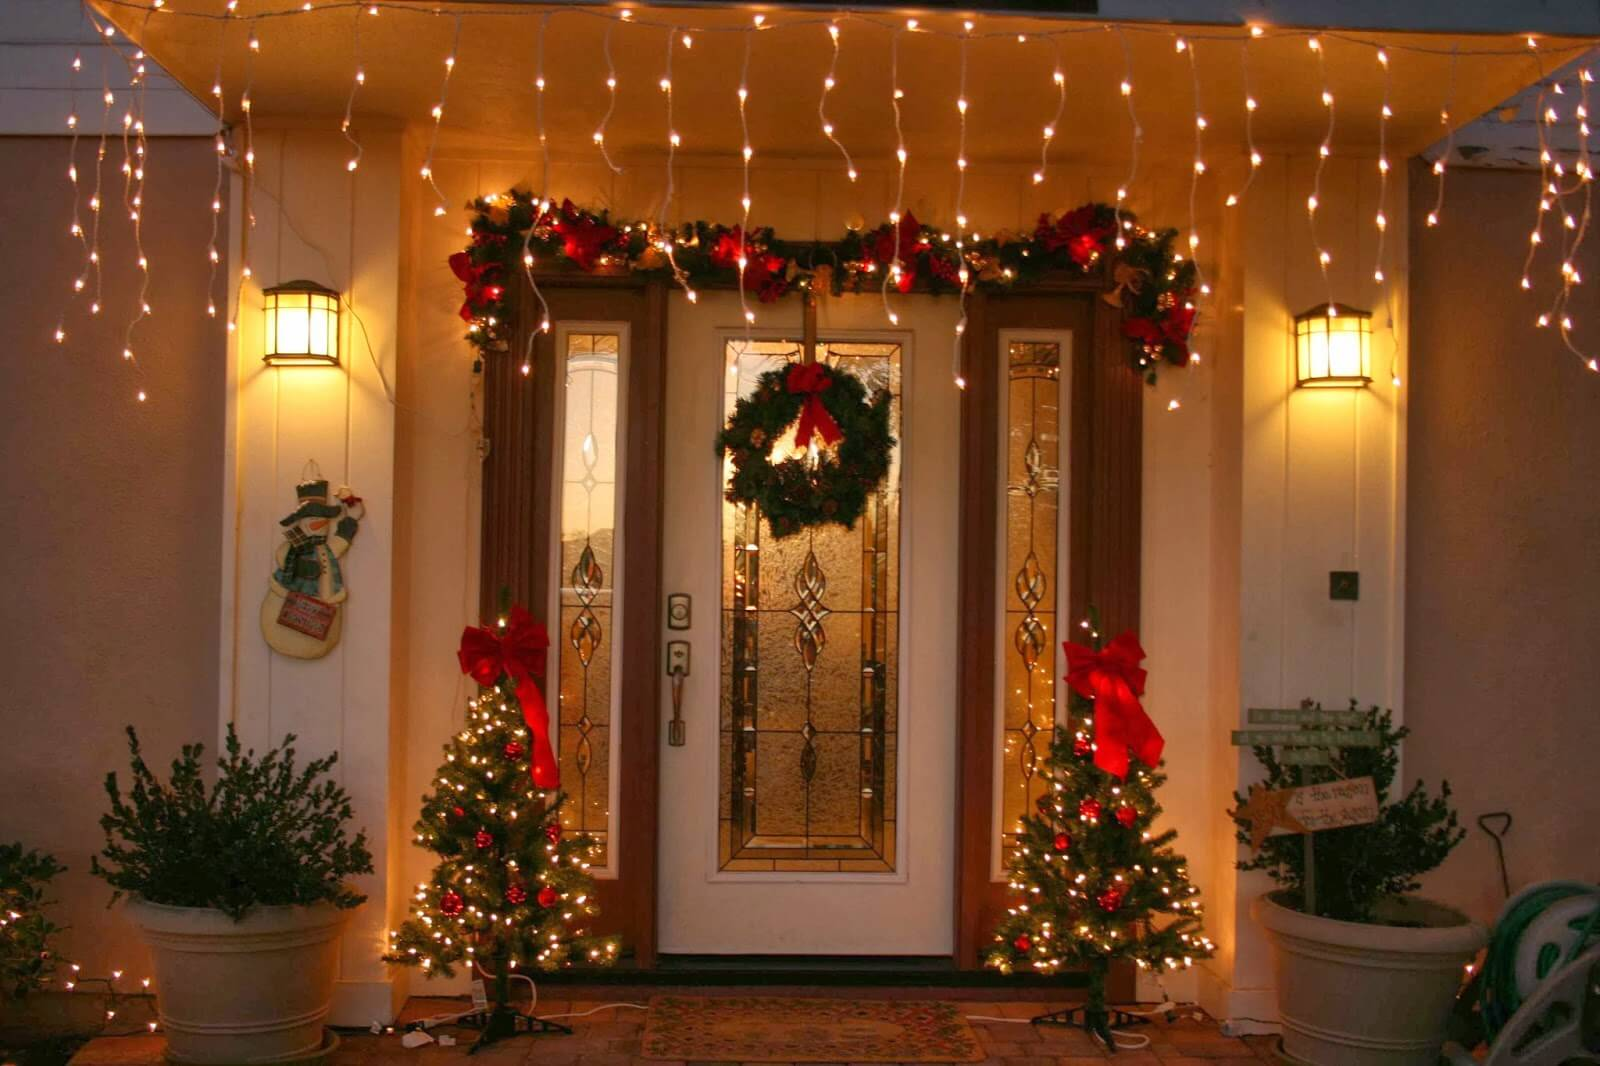 5 ideas para decorar la casa en navidad - Decoracion casa ideas ...